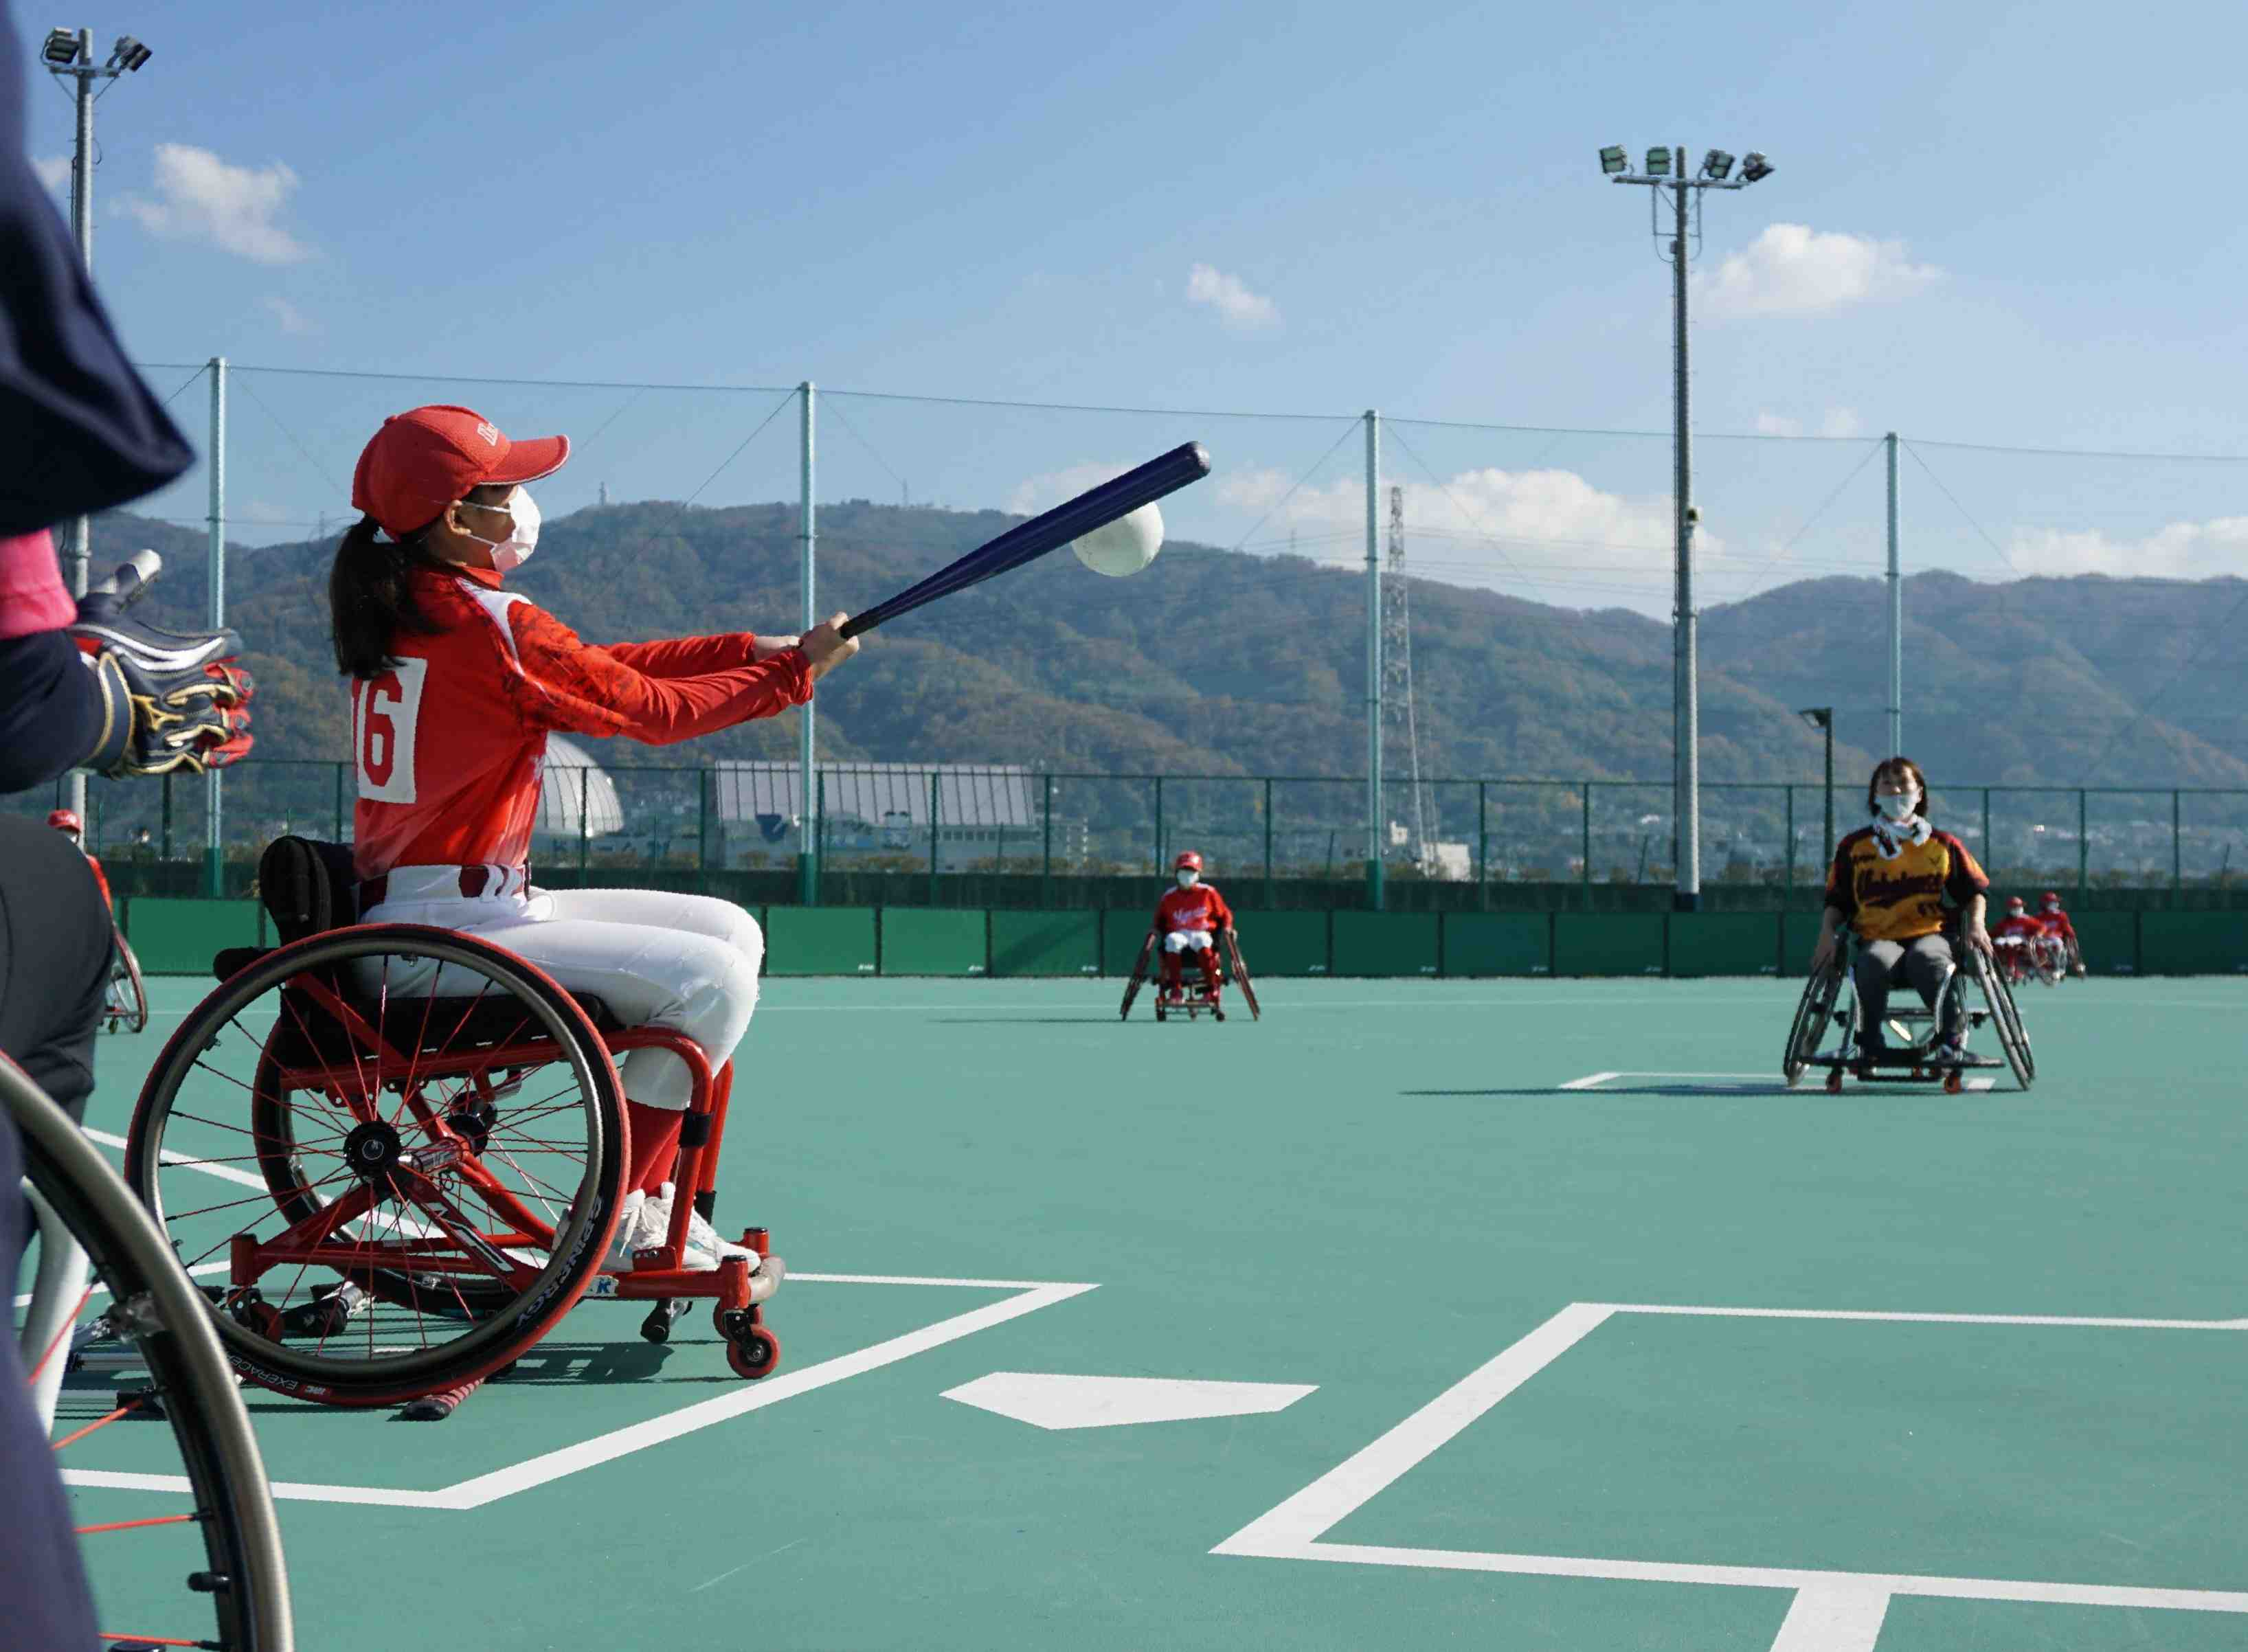 Wheelchair softball – First facility in Japan opened 005